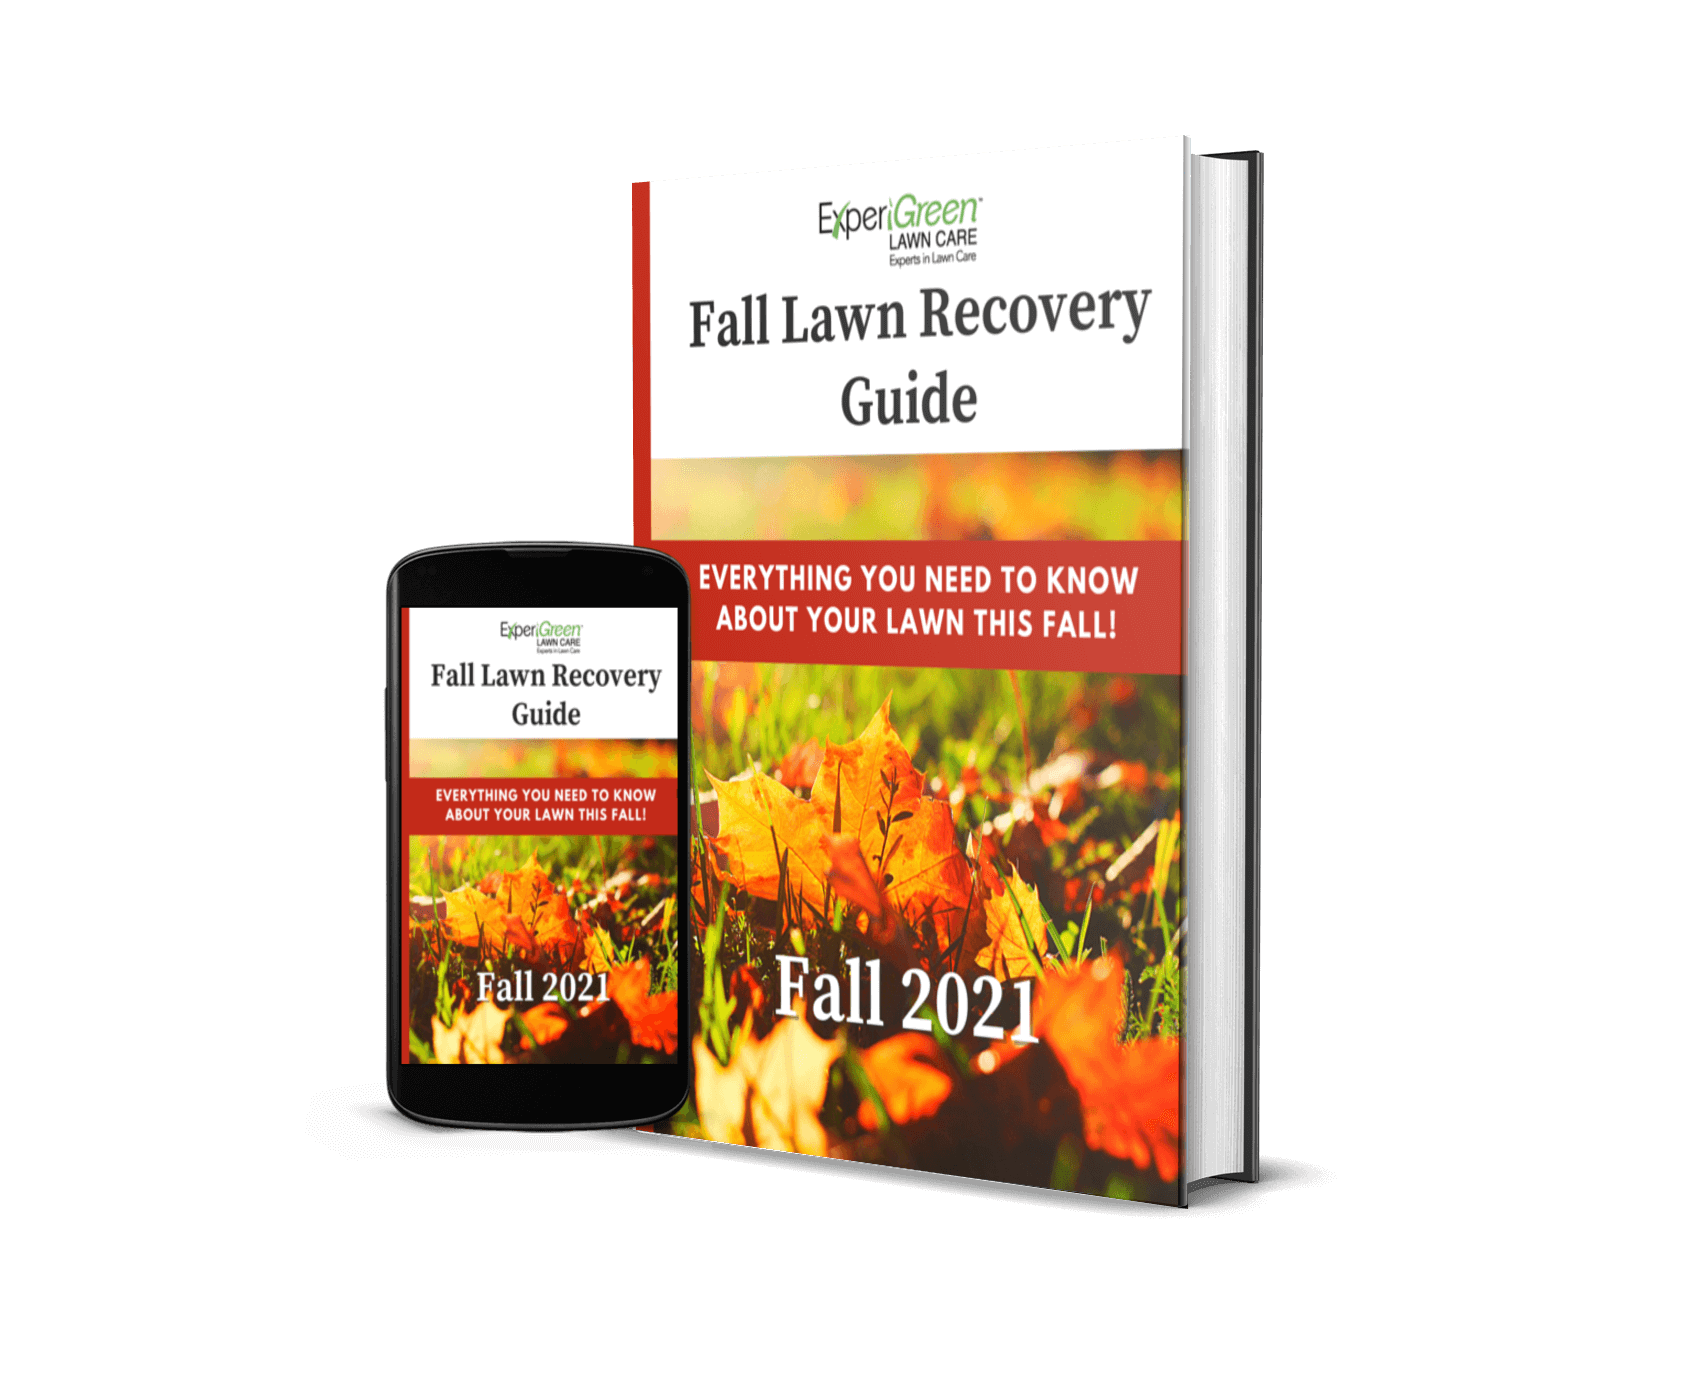 Download ExperiGreen's Fall Recovery Guide For Free